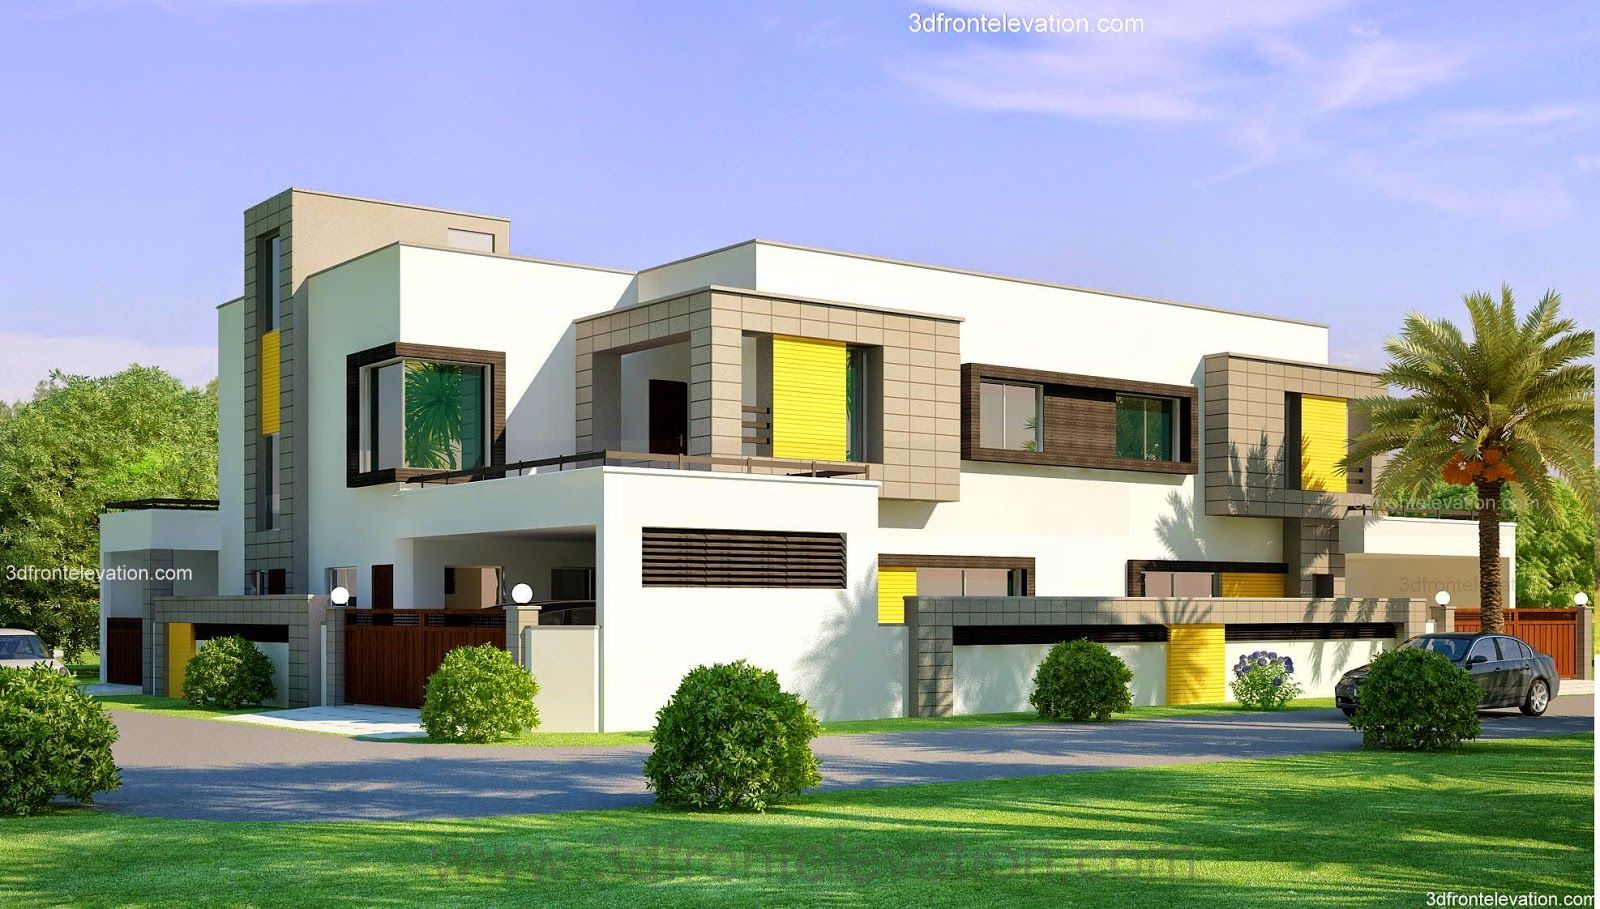 1 kanal corner plot 2 house design lahore beautiful house 1 kanal modern 3d front elevation - D home design front elevation ...